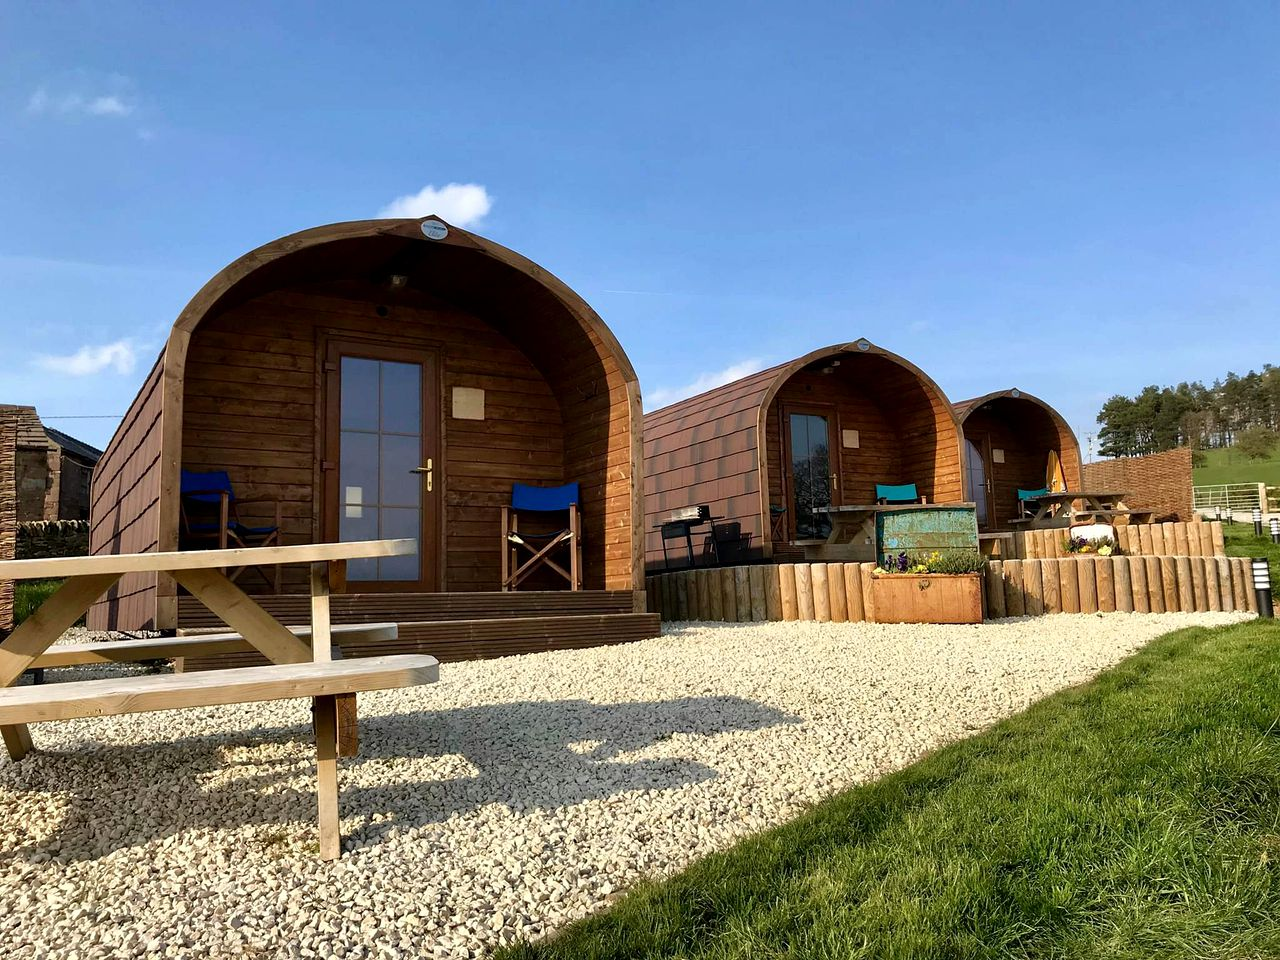 Glamping pods with hot tub near Cheshire, England